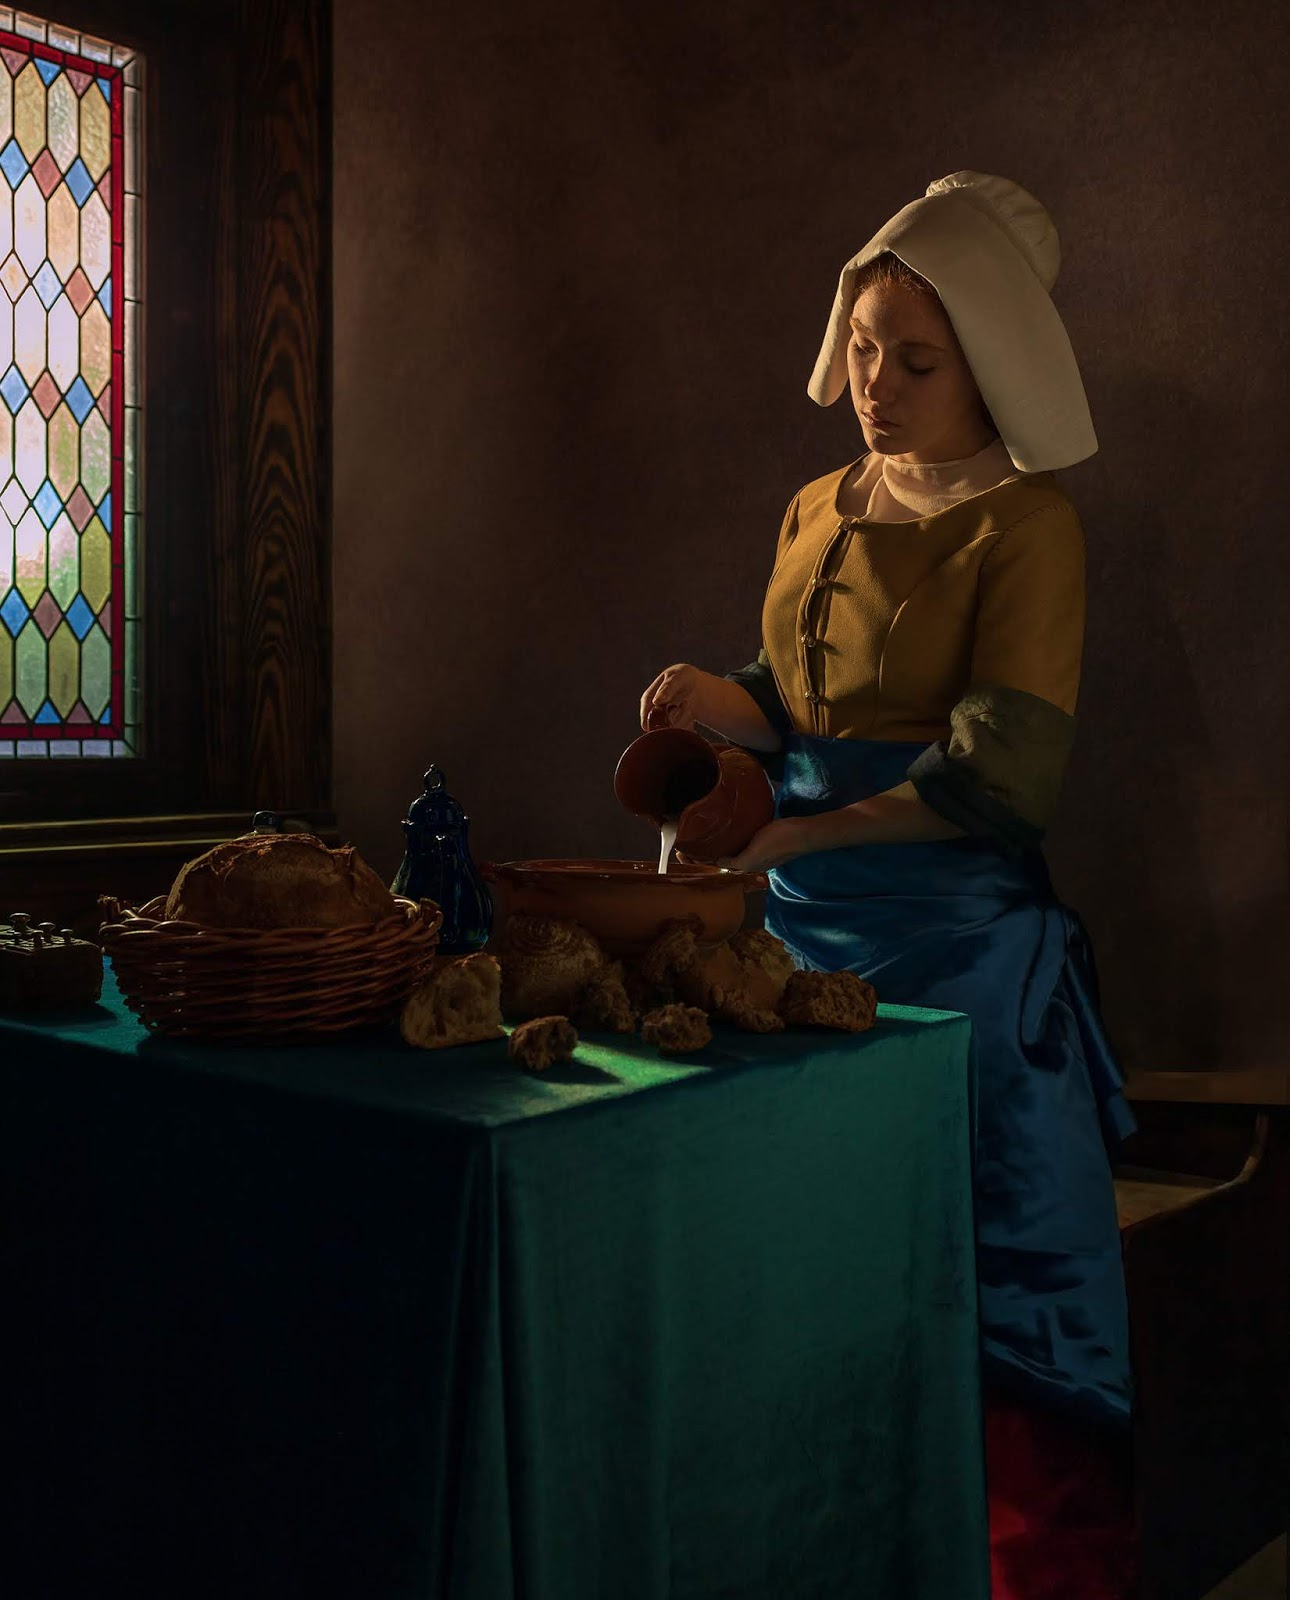 How to make a photographic version of the famous oil painting 'The milkmaid' by Vermeer